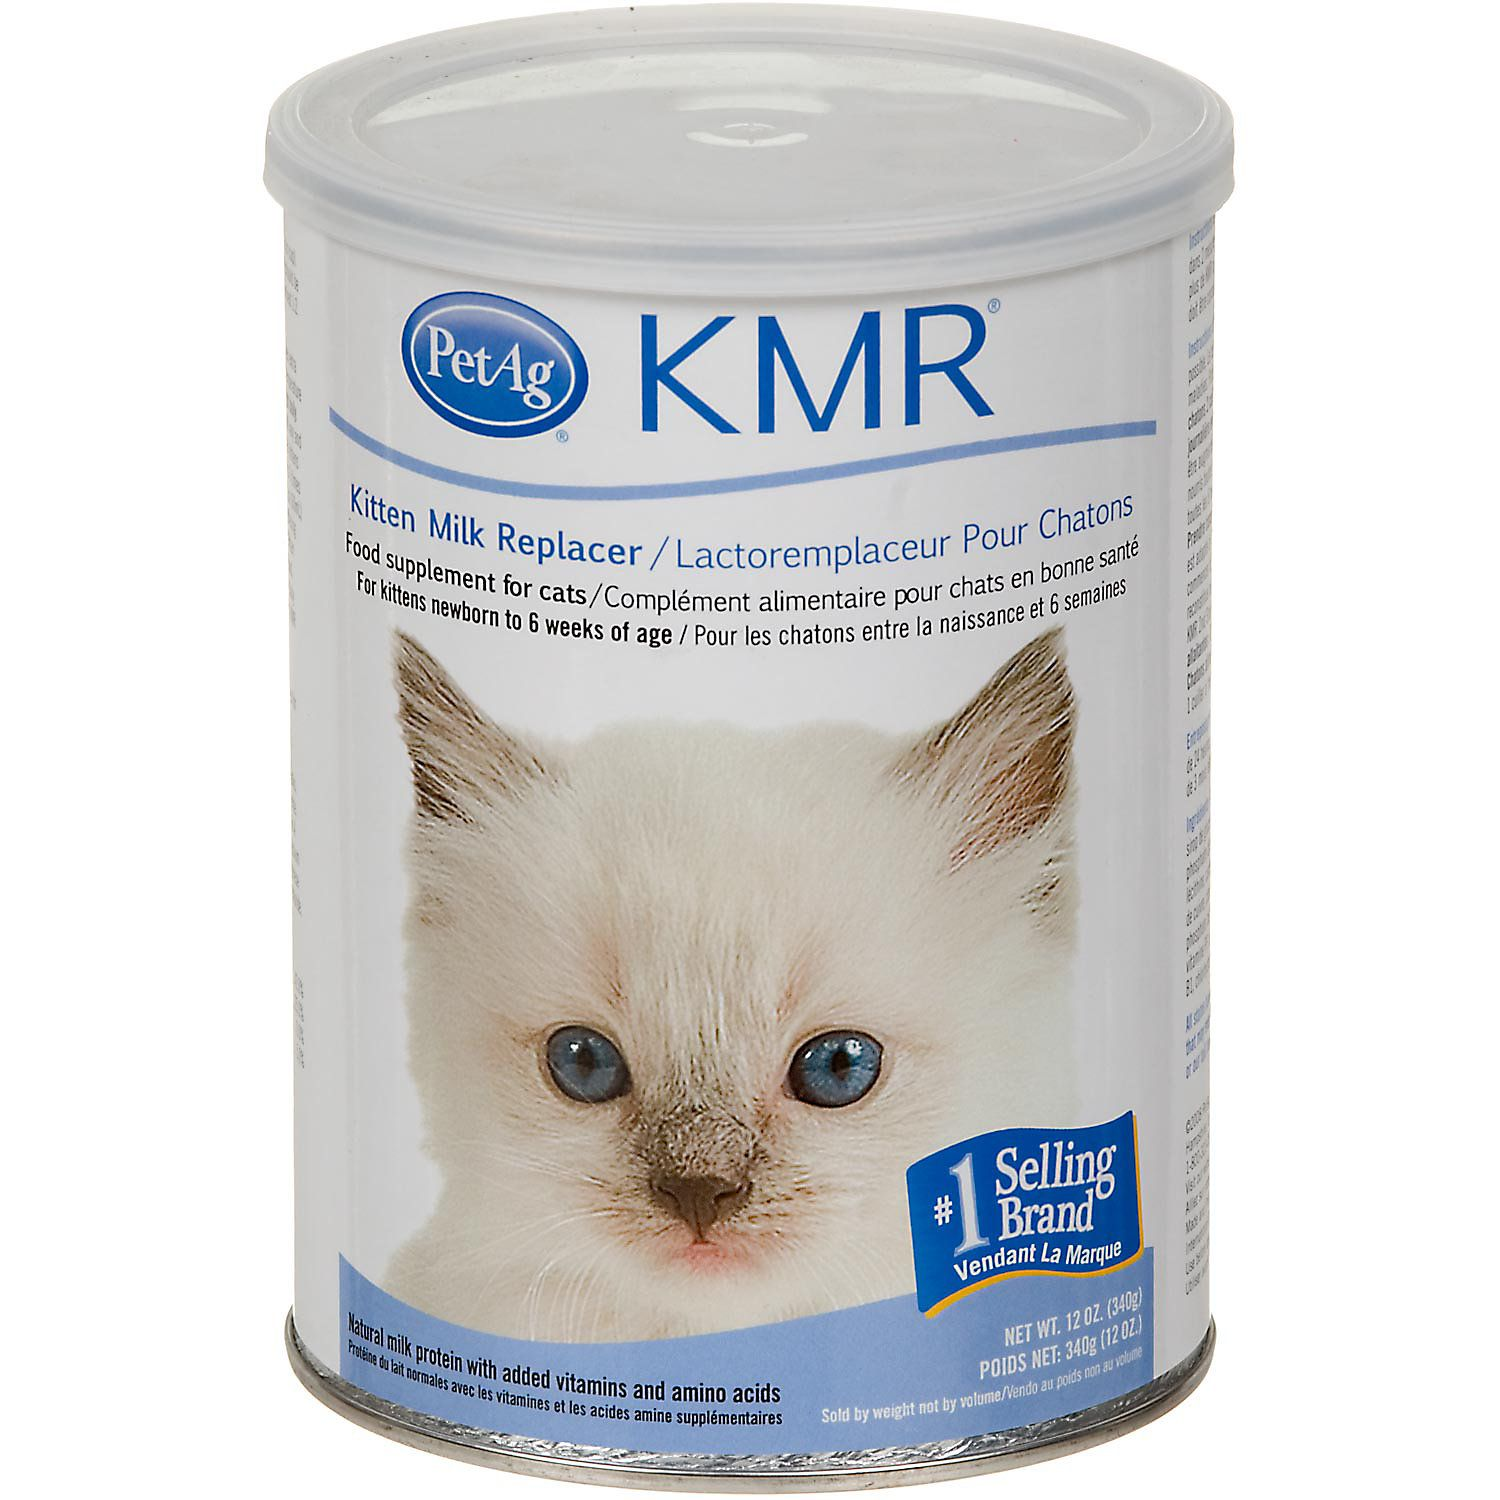 Petag Kmr Kitten Milk Replacer Powder 12oz Petco Kitten Formula Cat Food Allergy Kitten Food